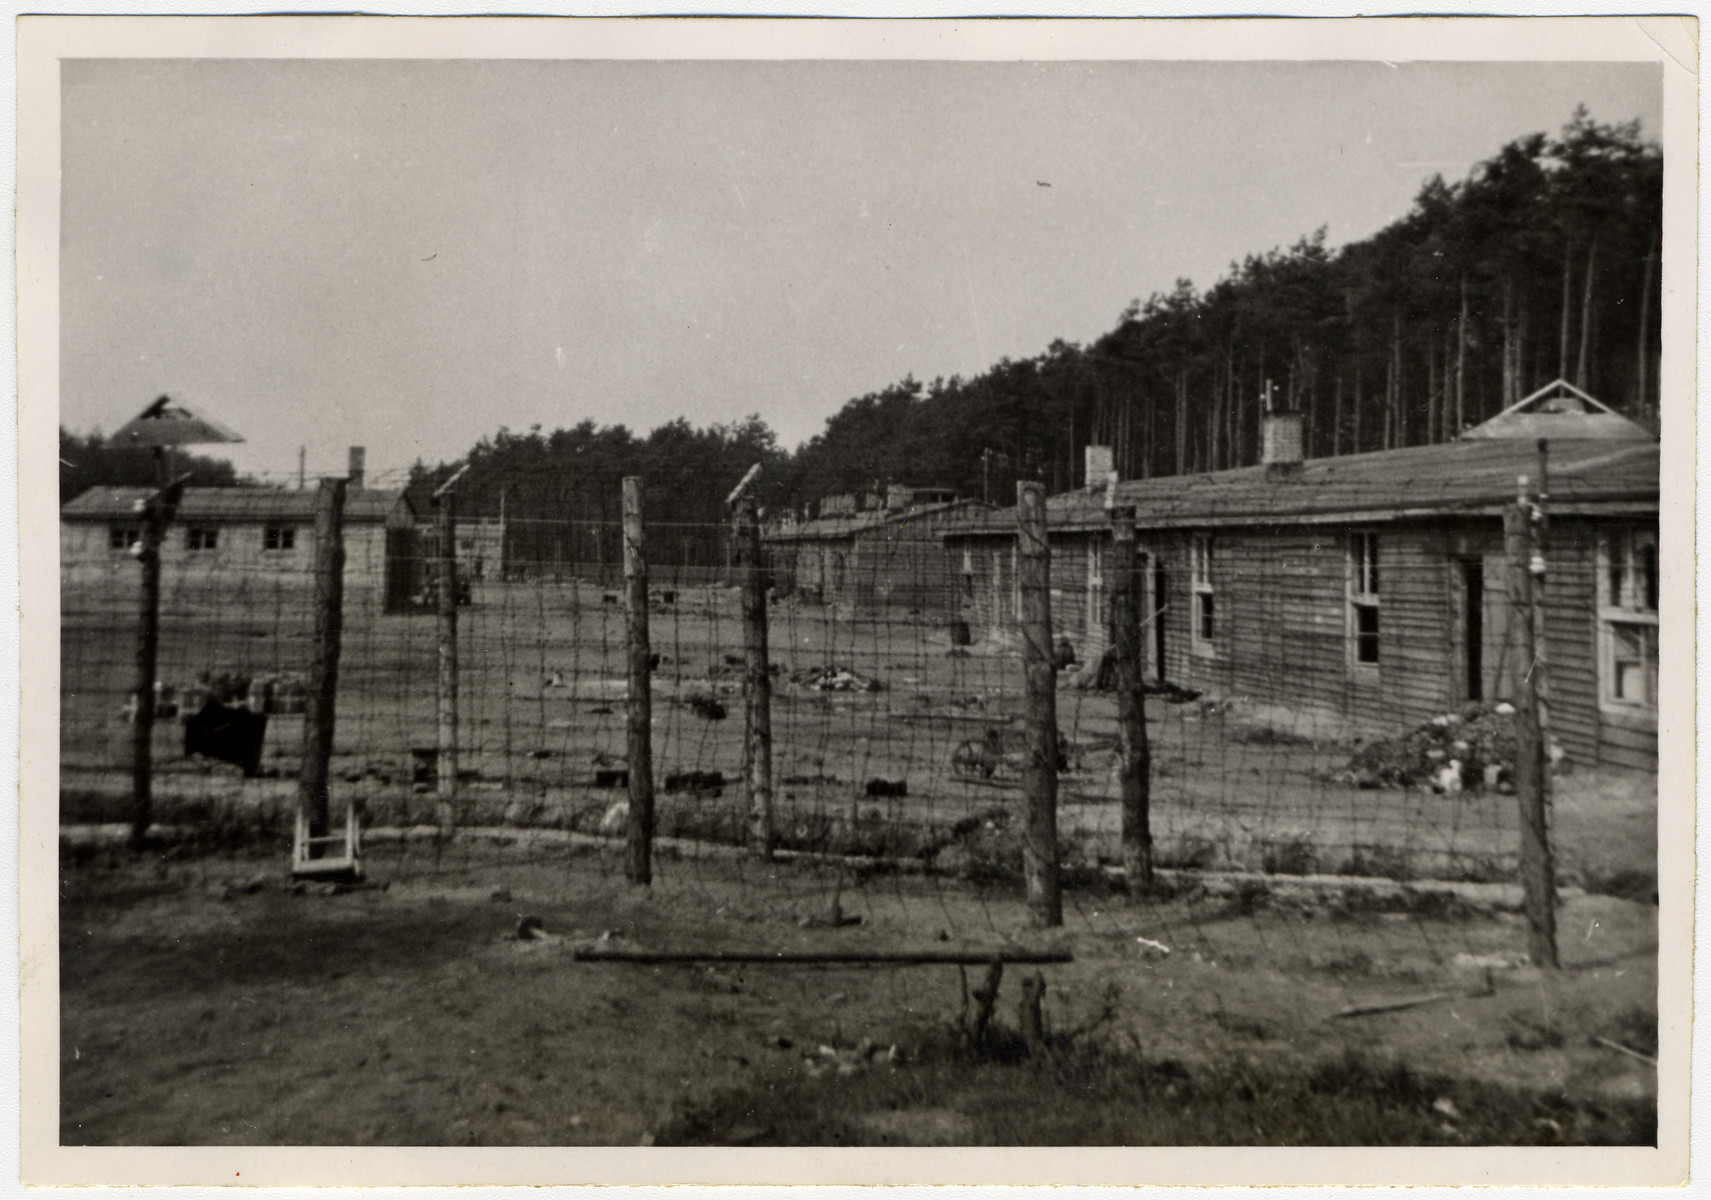 View of the fence and barracks in the Woebbelin concentration camp.